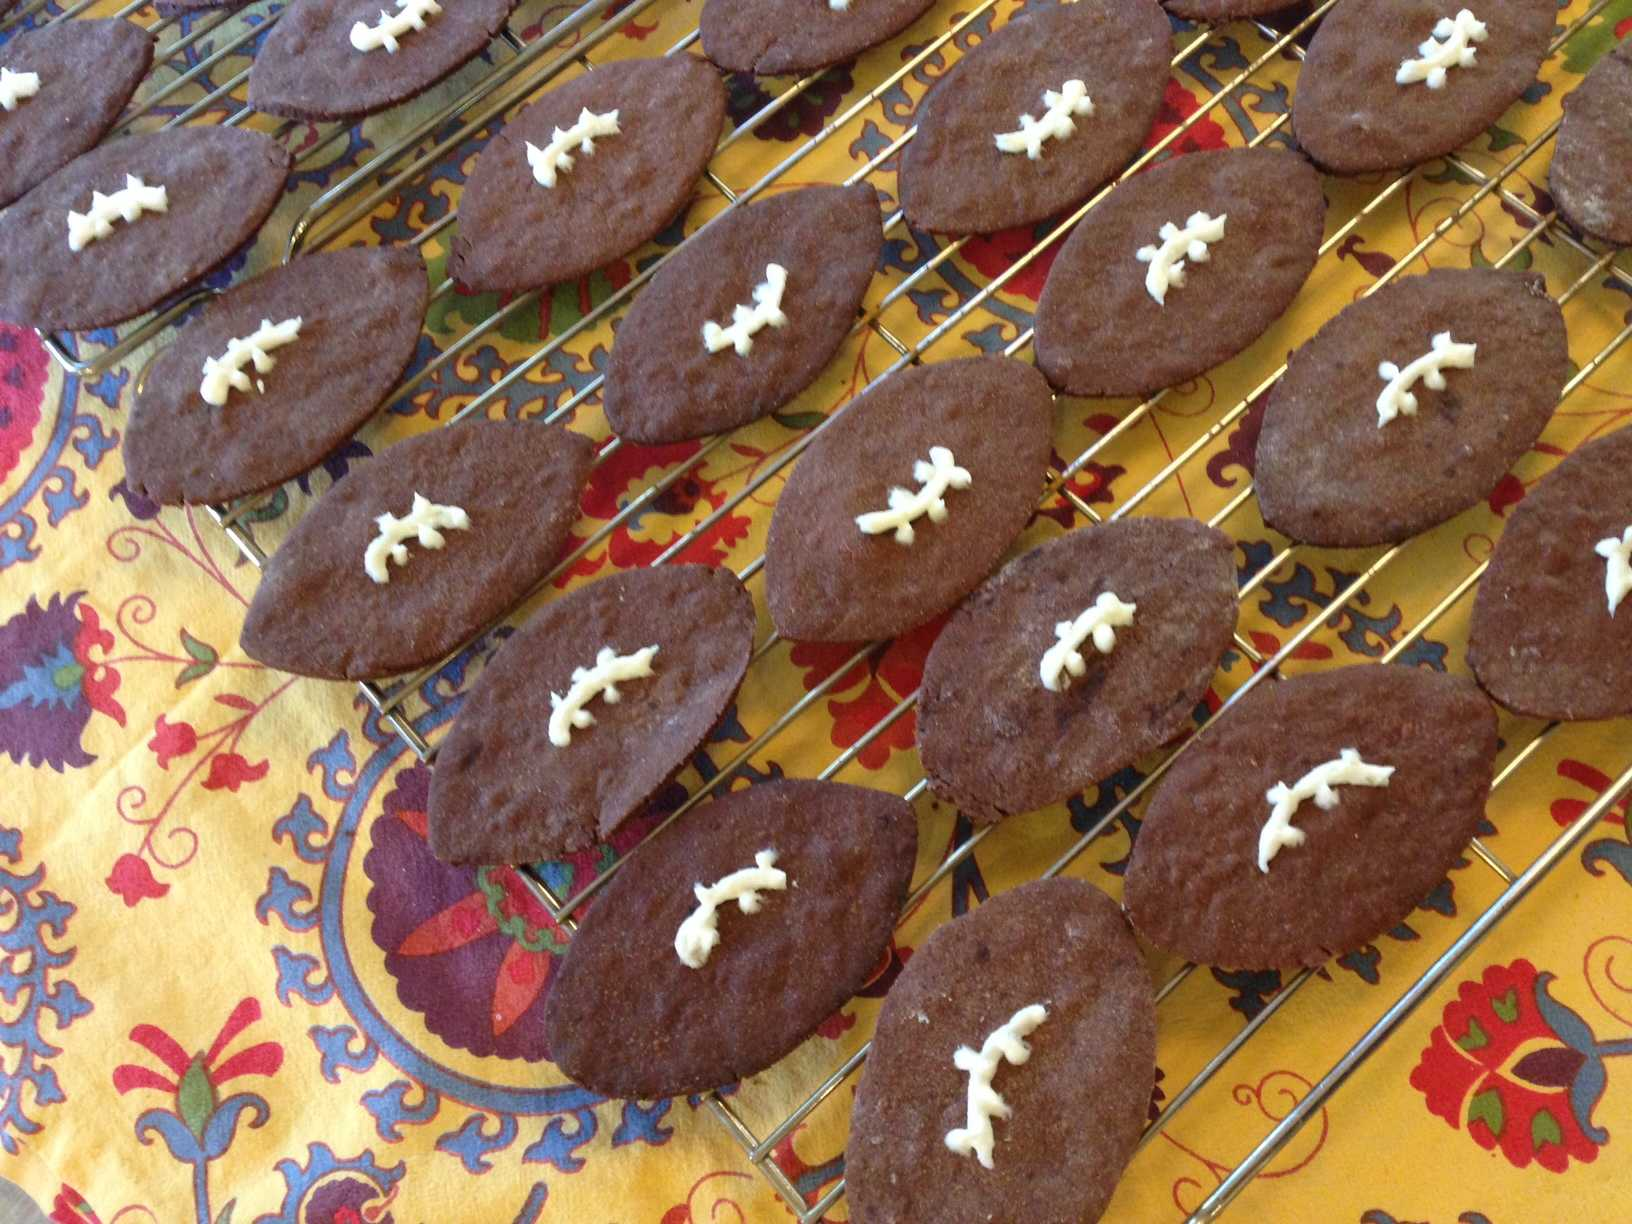 After years of traditional superstitions, chocolate football cookies might just be the secret to 49er success in the Superbowl.